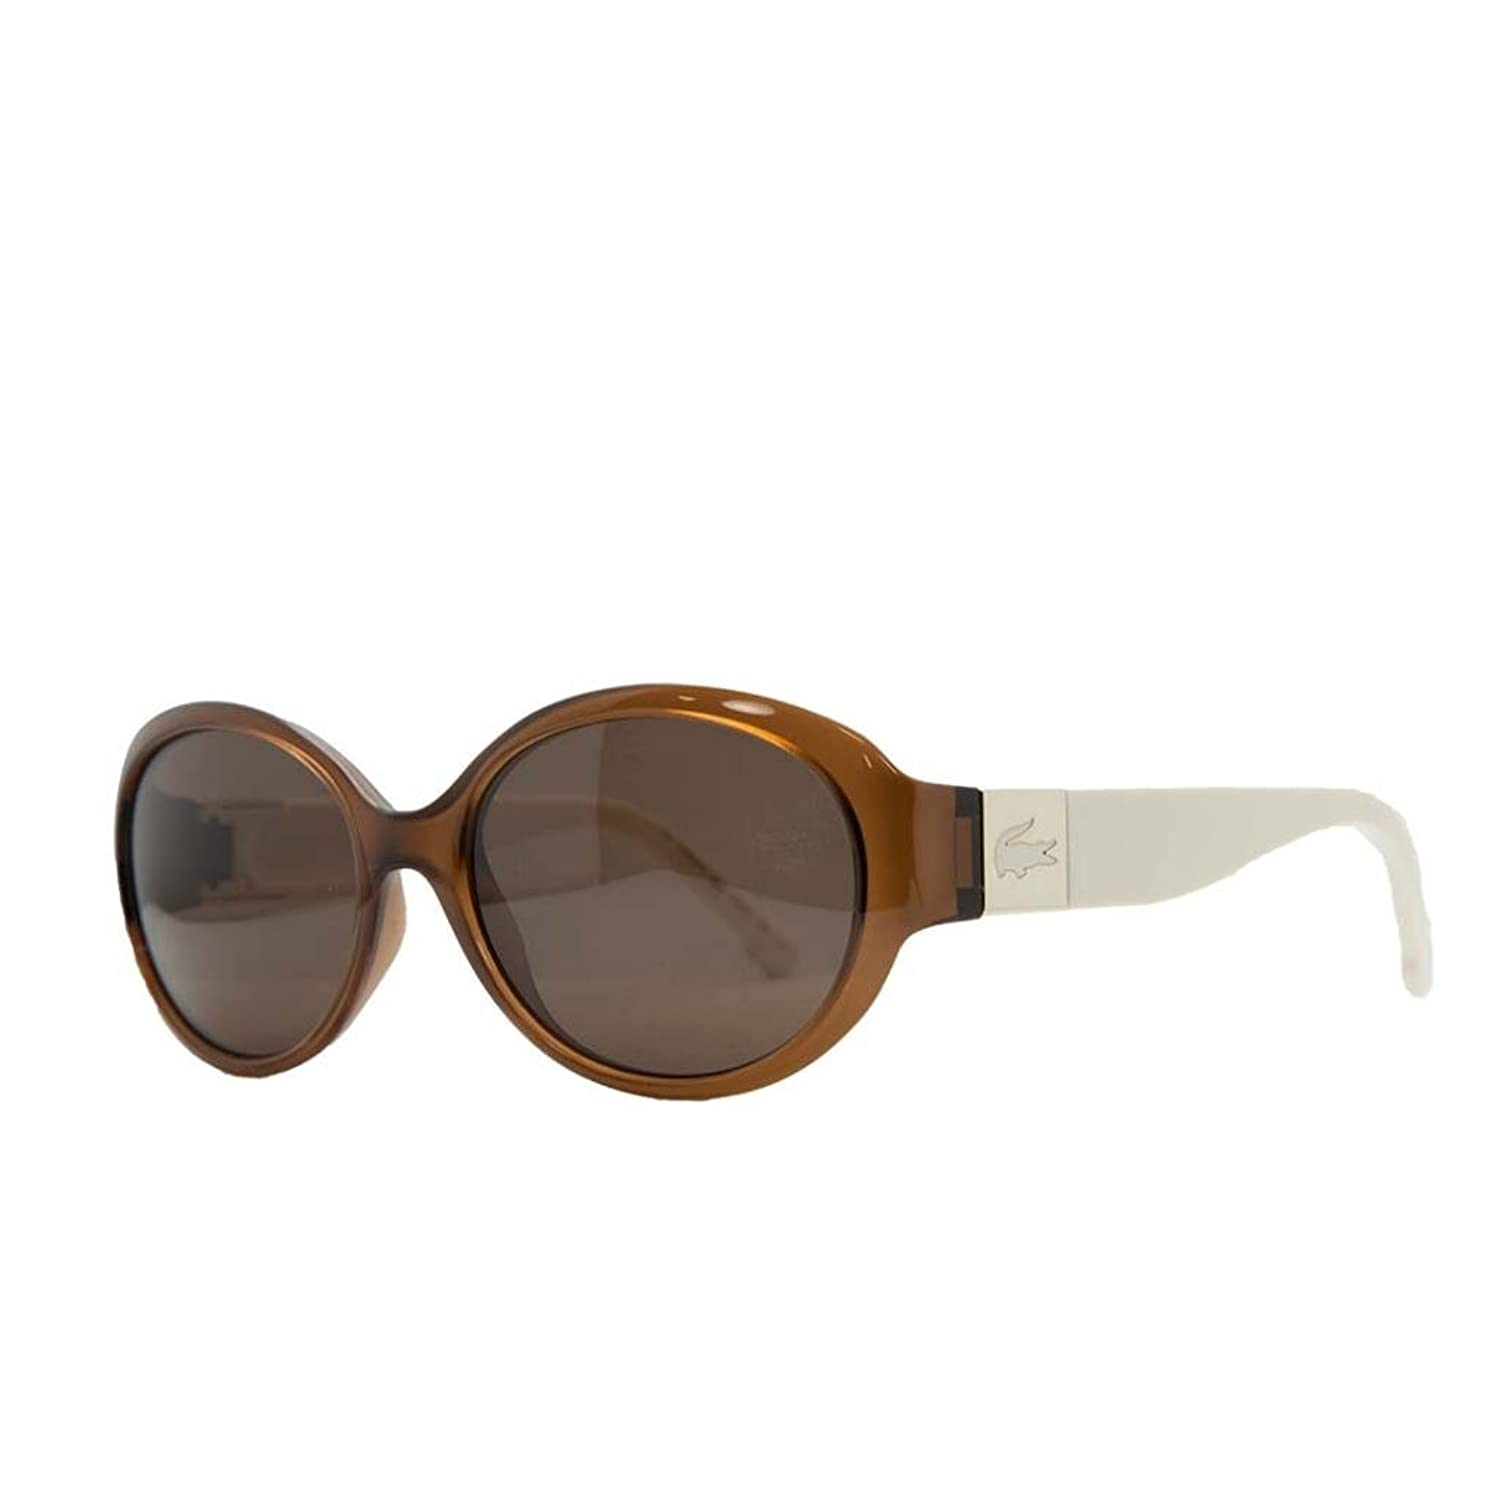 mens sunglasses for sale  sunglasses l509s